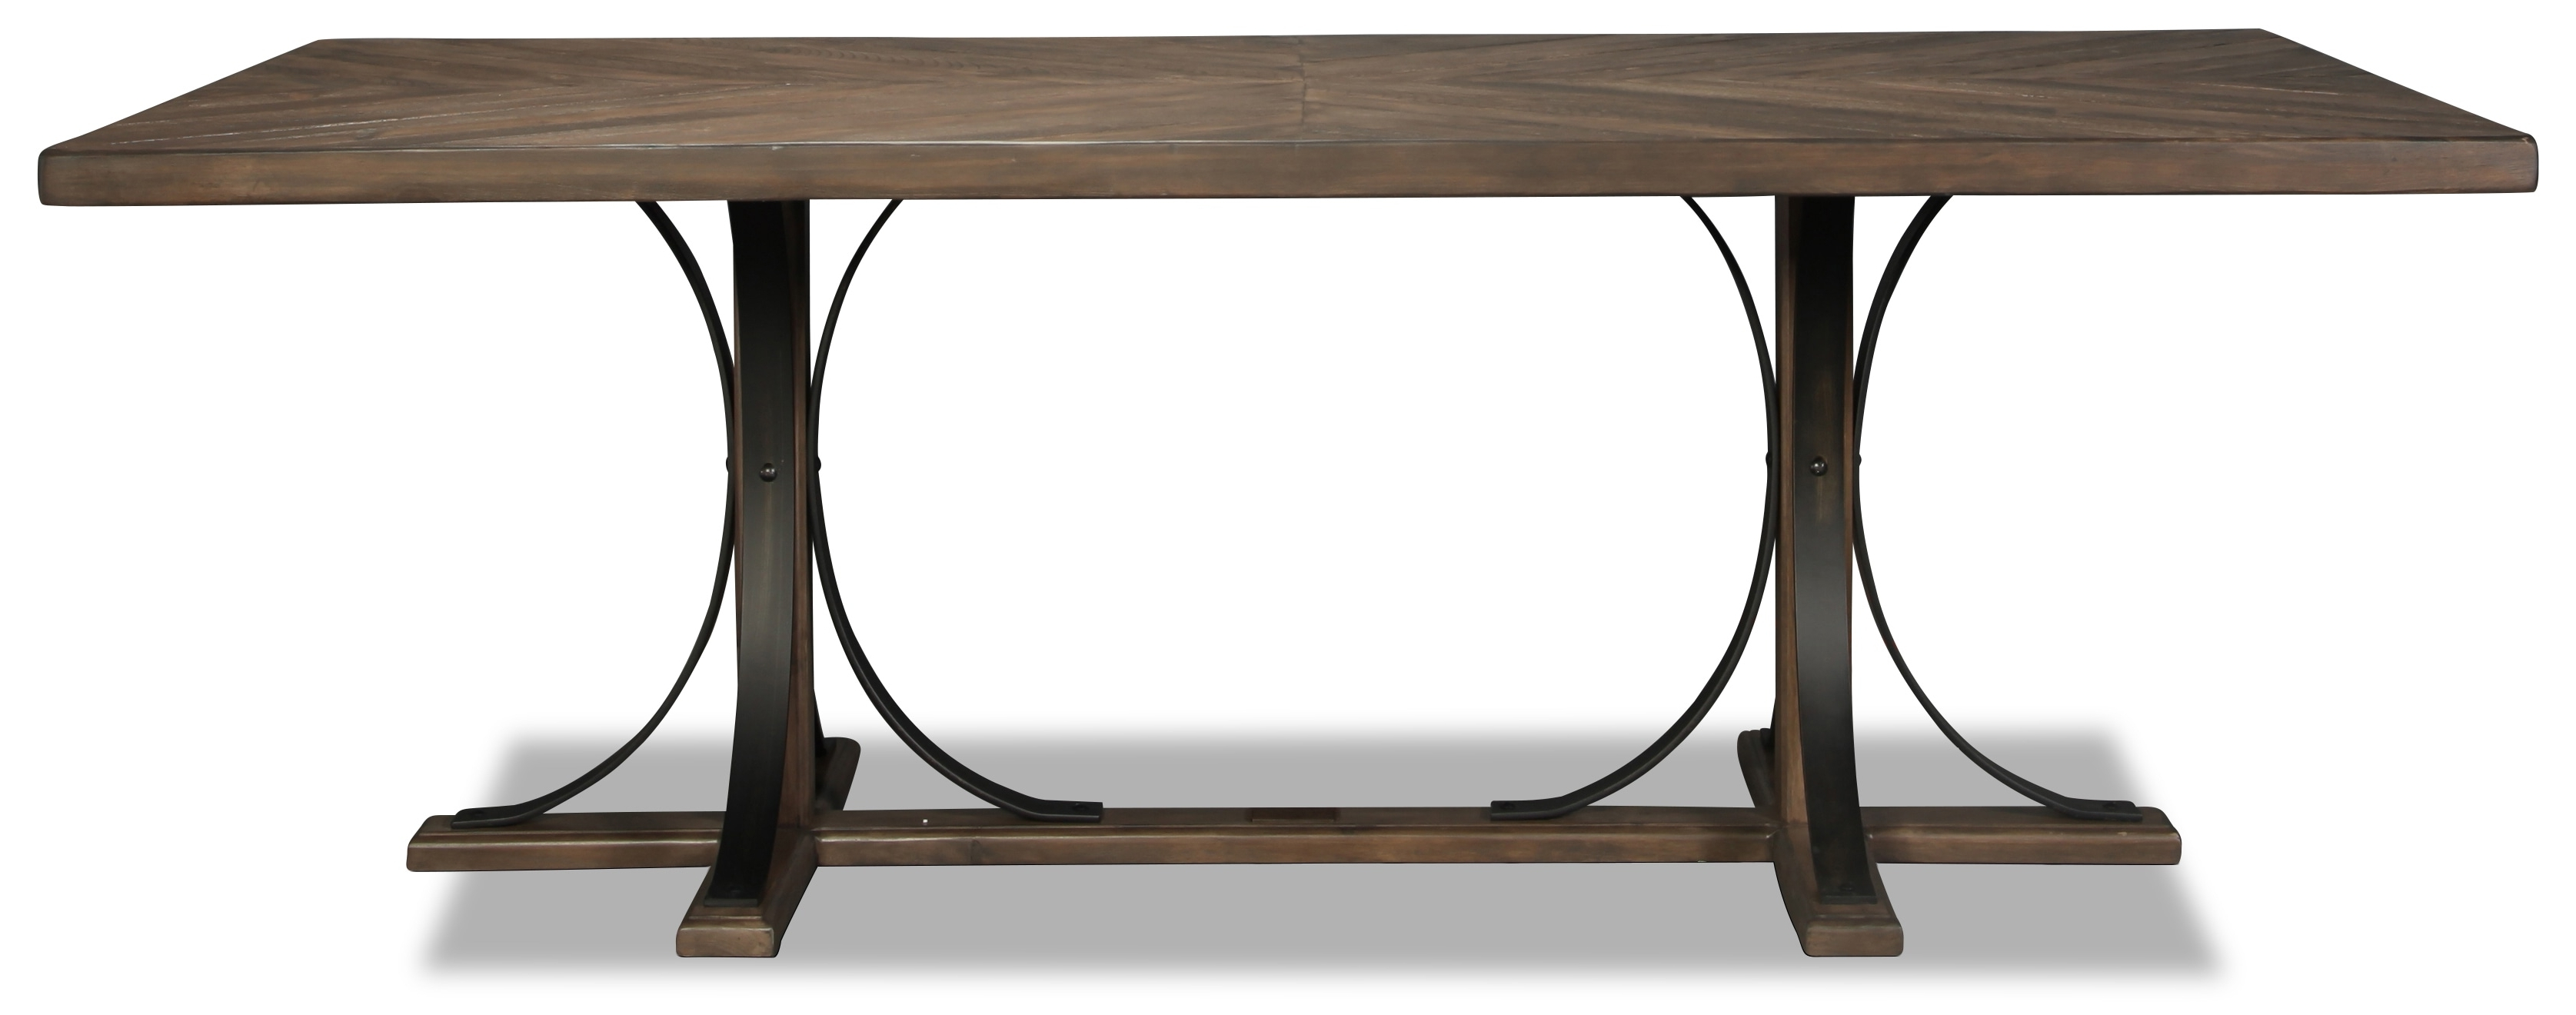 Widely Used Magnolia Home Ellipse Cocktail Tables By Joanna Gaines Within Magnolia Home Traditional Iron Trestle Table (View 20 of 20)